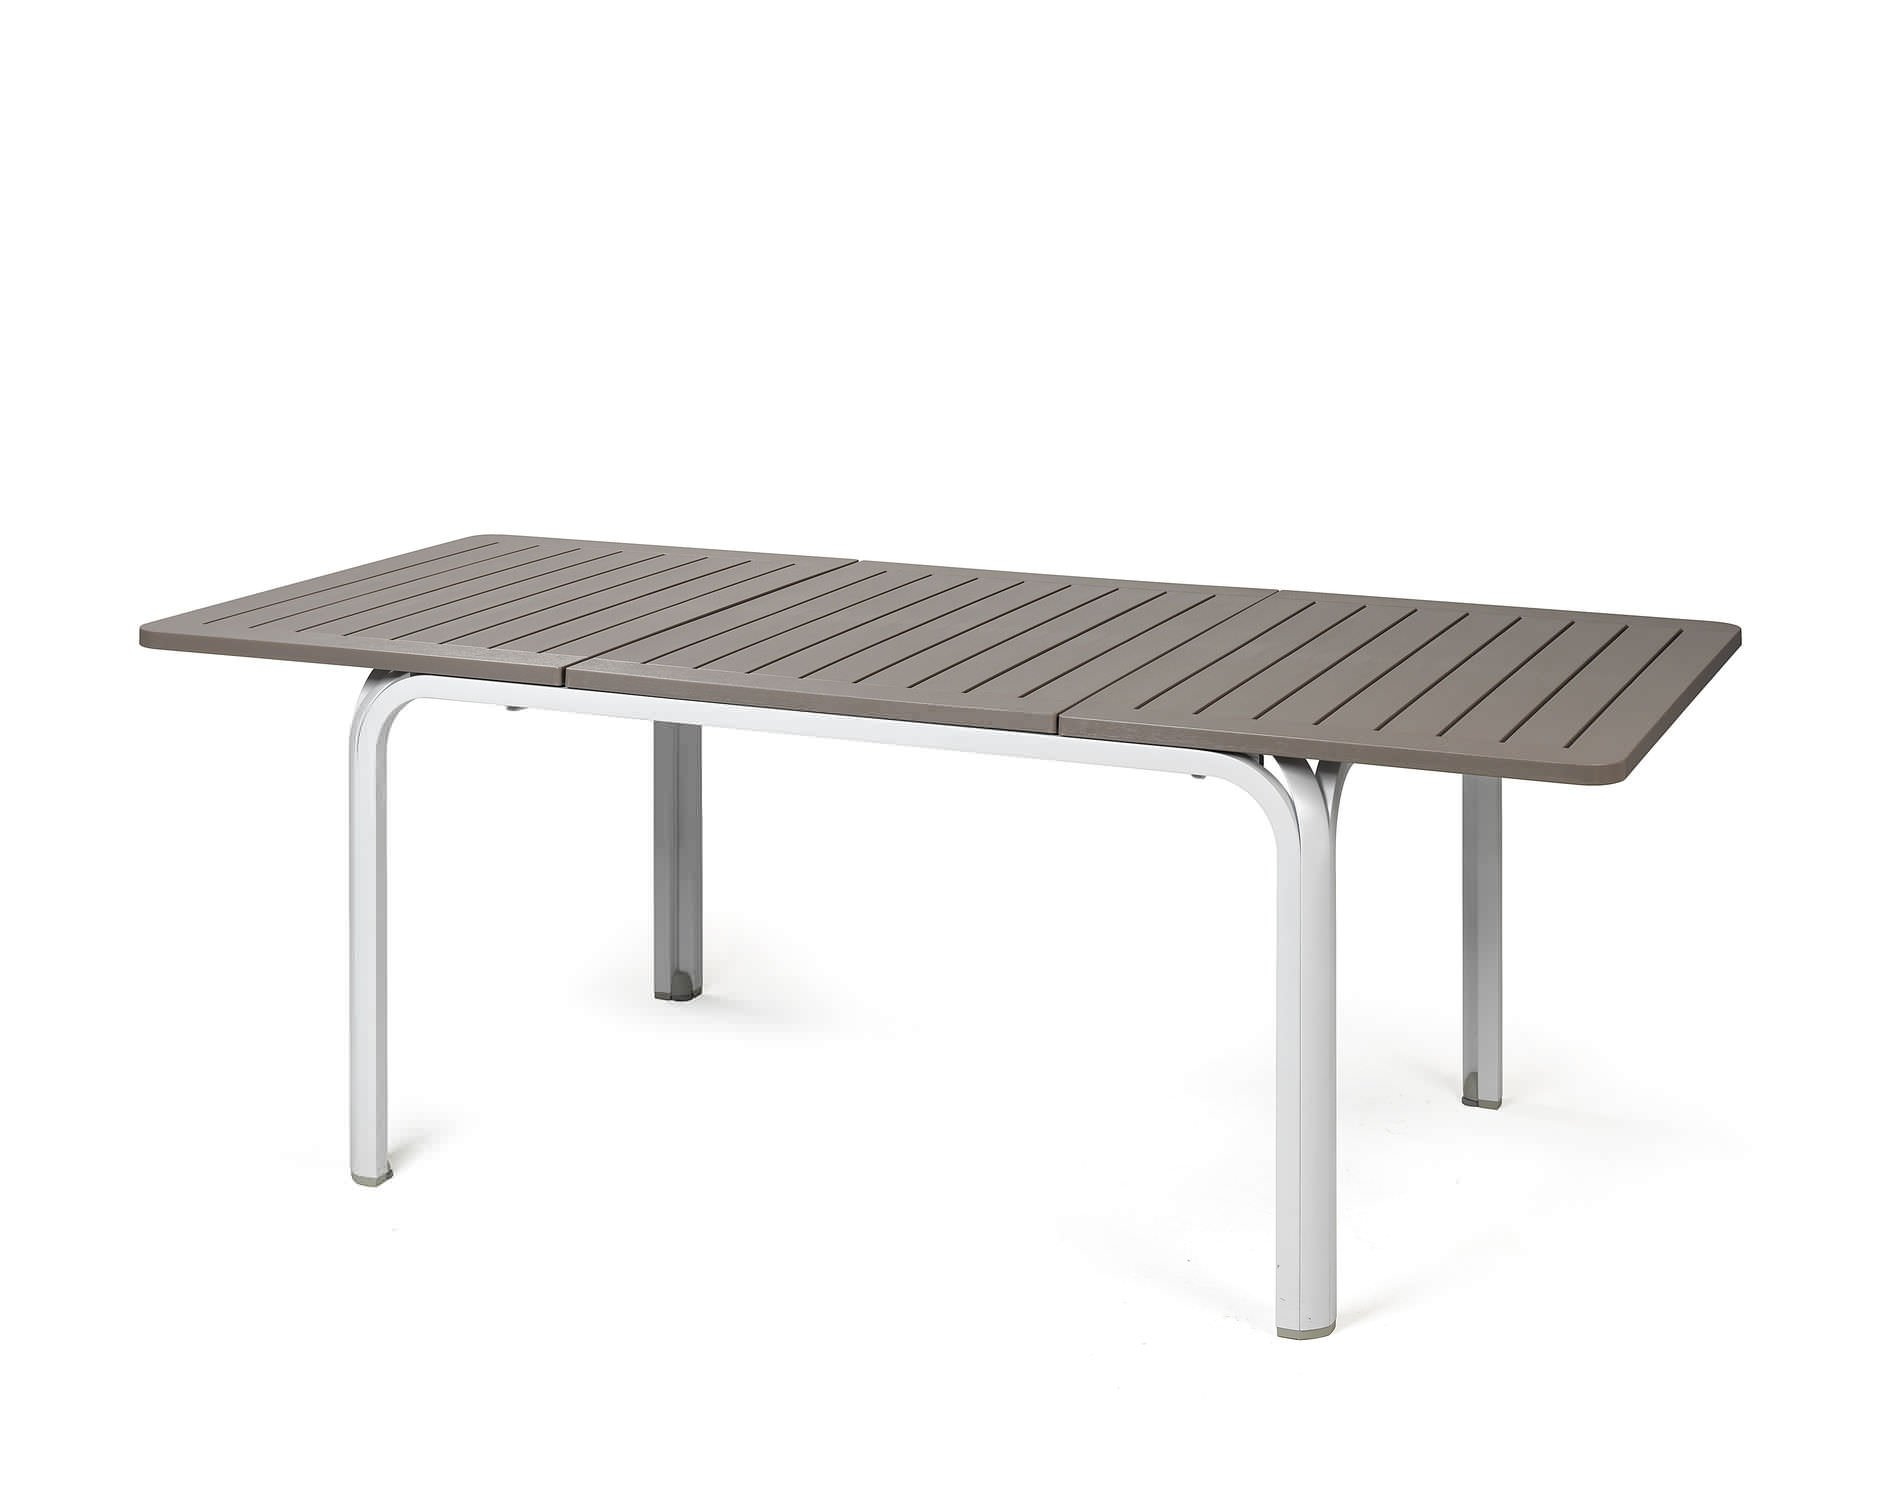 Alloro 140 Extendable Outdoor Dining Table ByDezign NZ Ltd